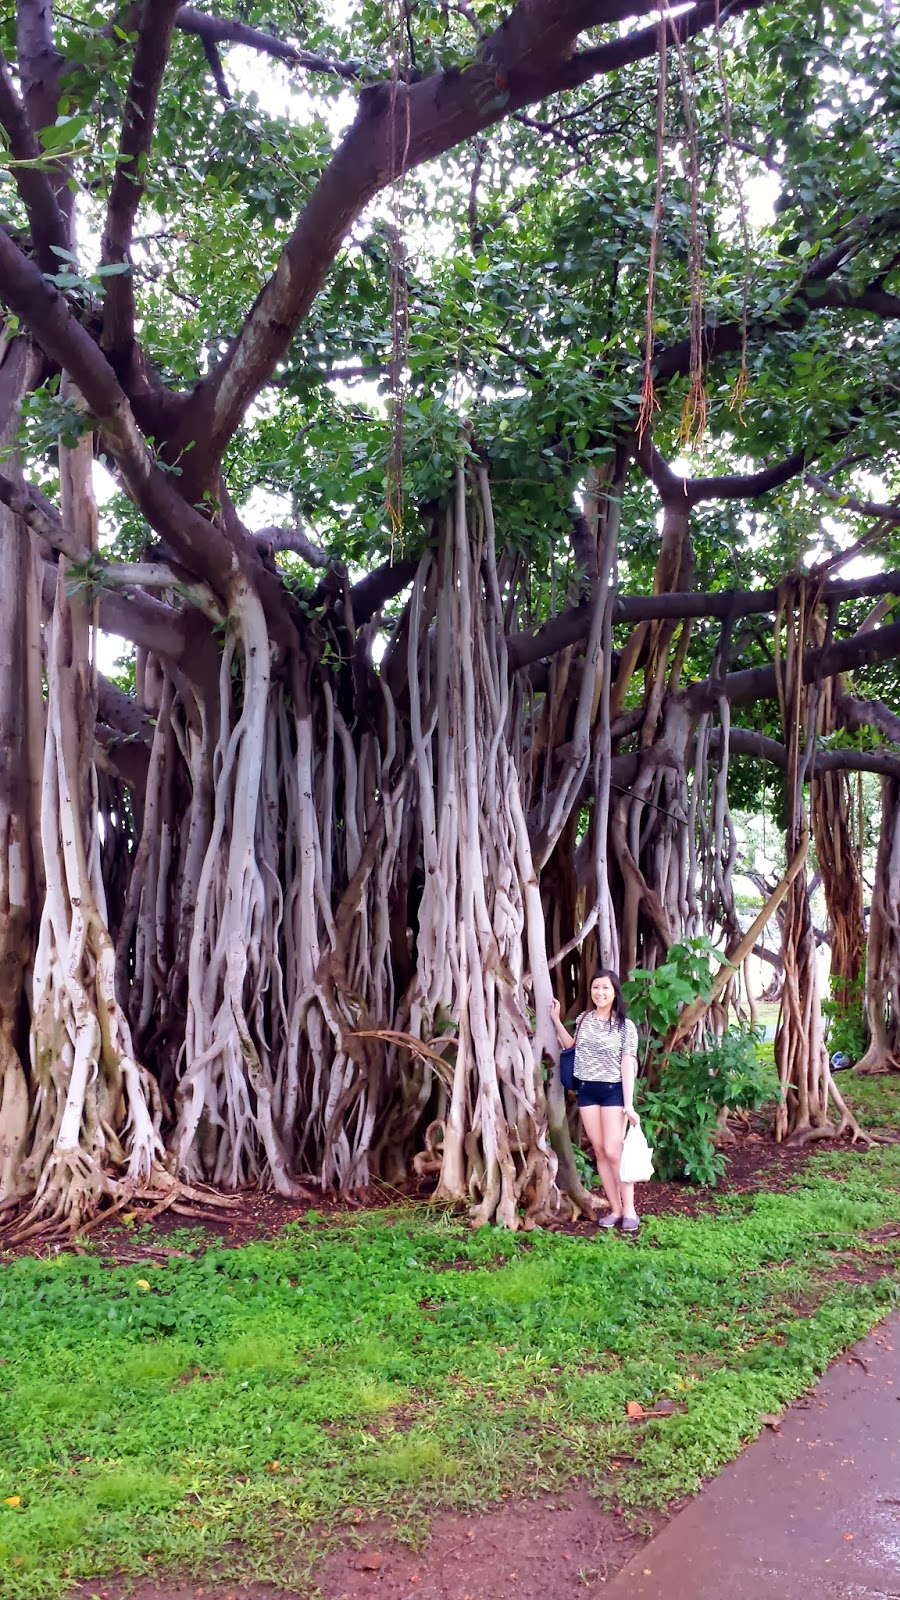 Banyan tree at Ala Moana park. Photo: Just J